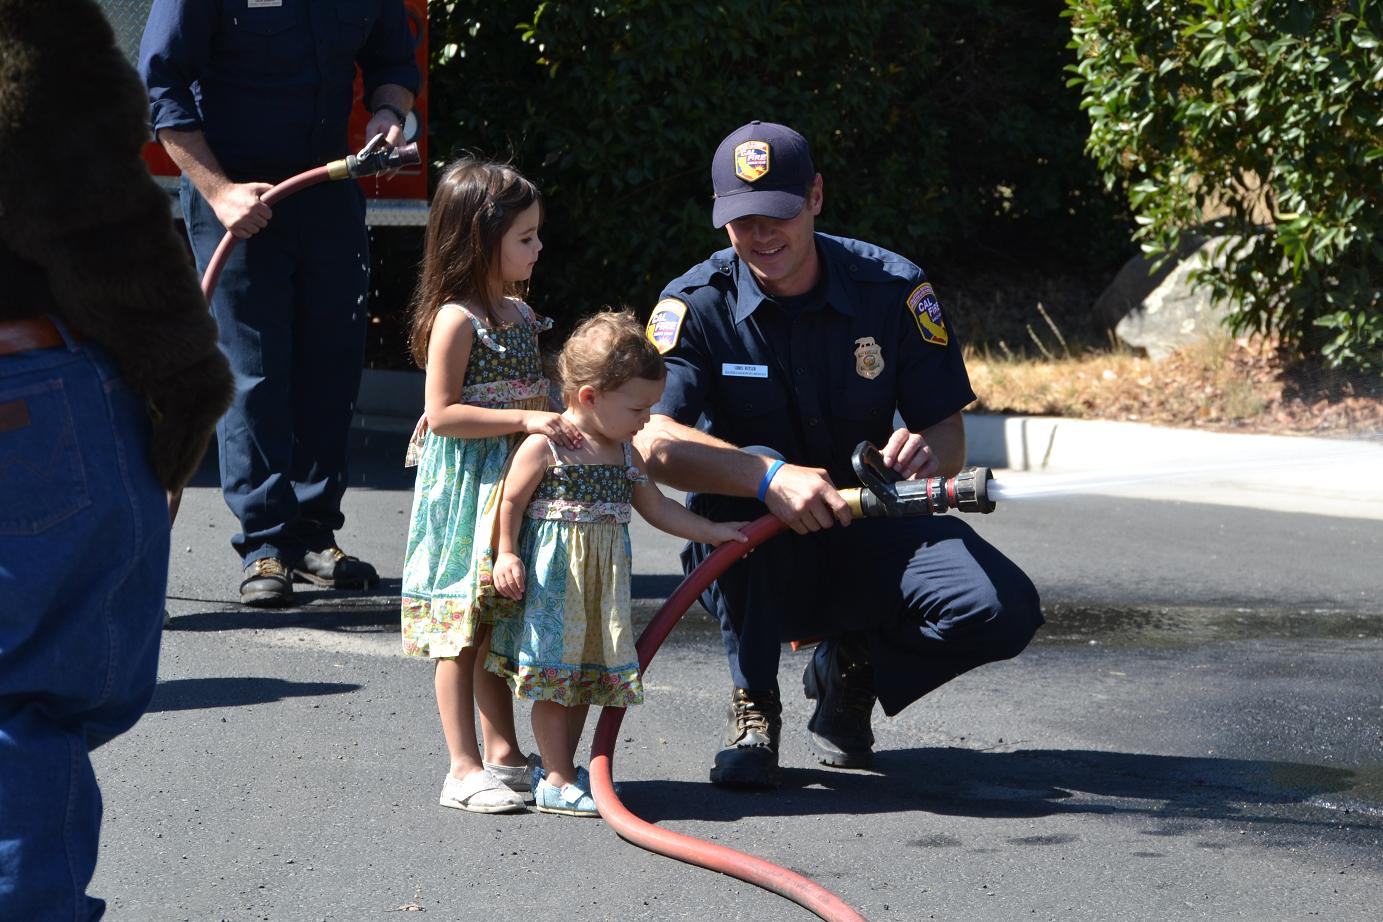 Firefighter Chris Butler shows kids how to use the fire hose - photo by Gina Clugston